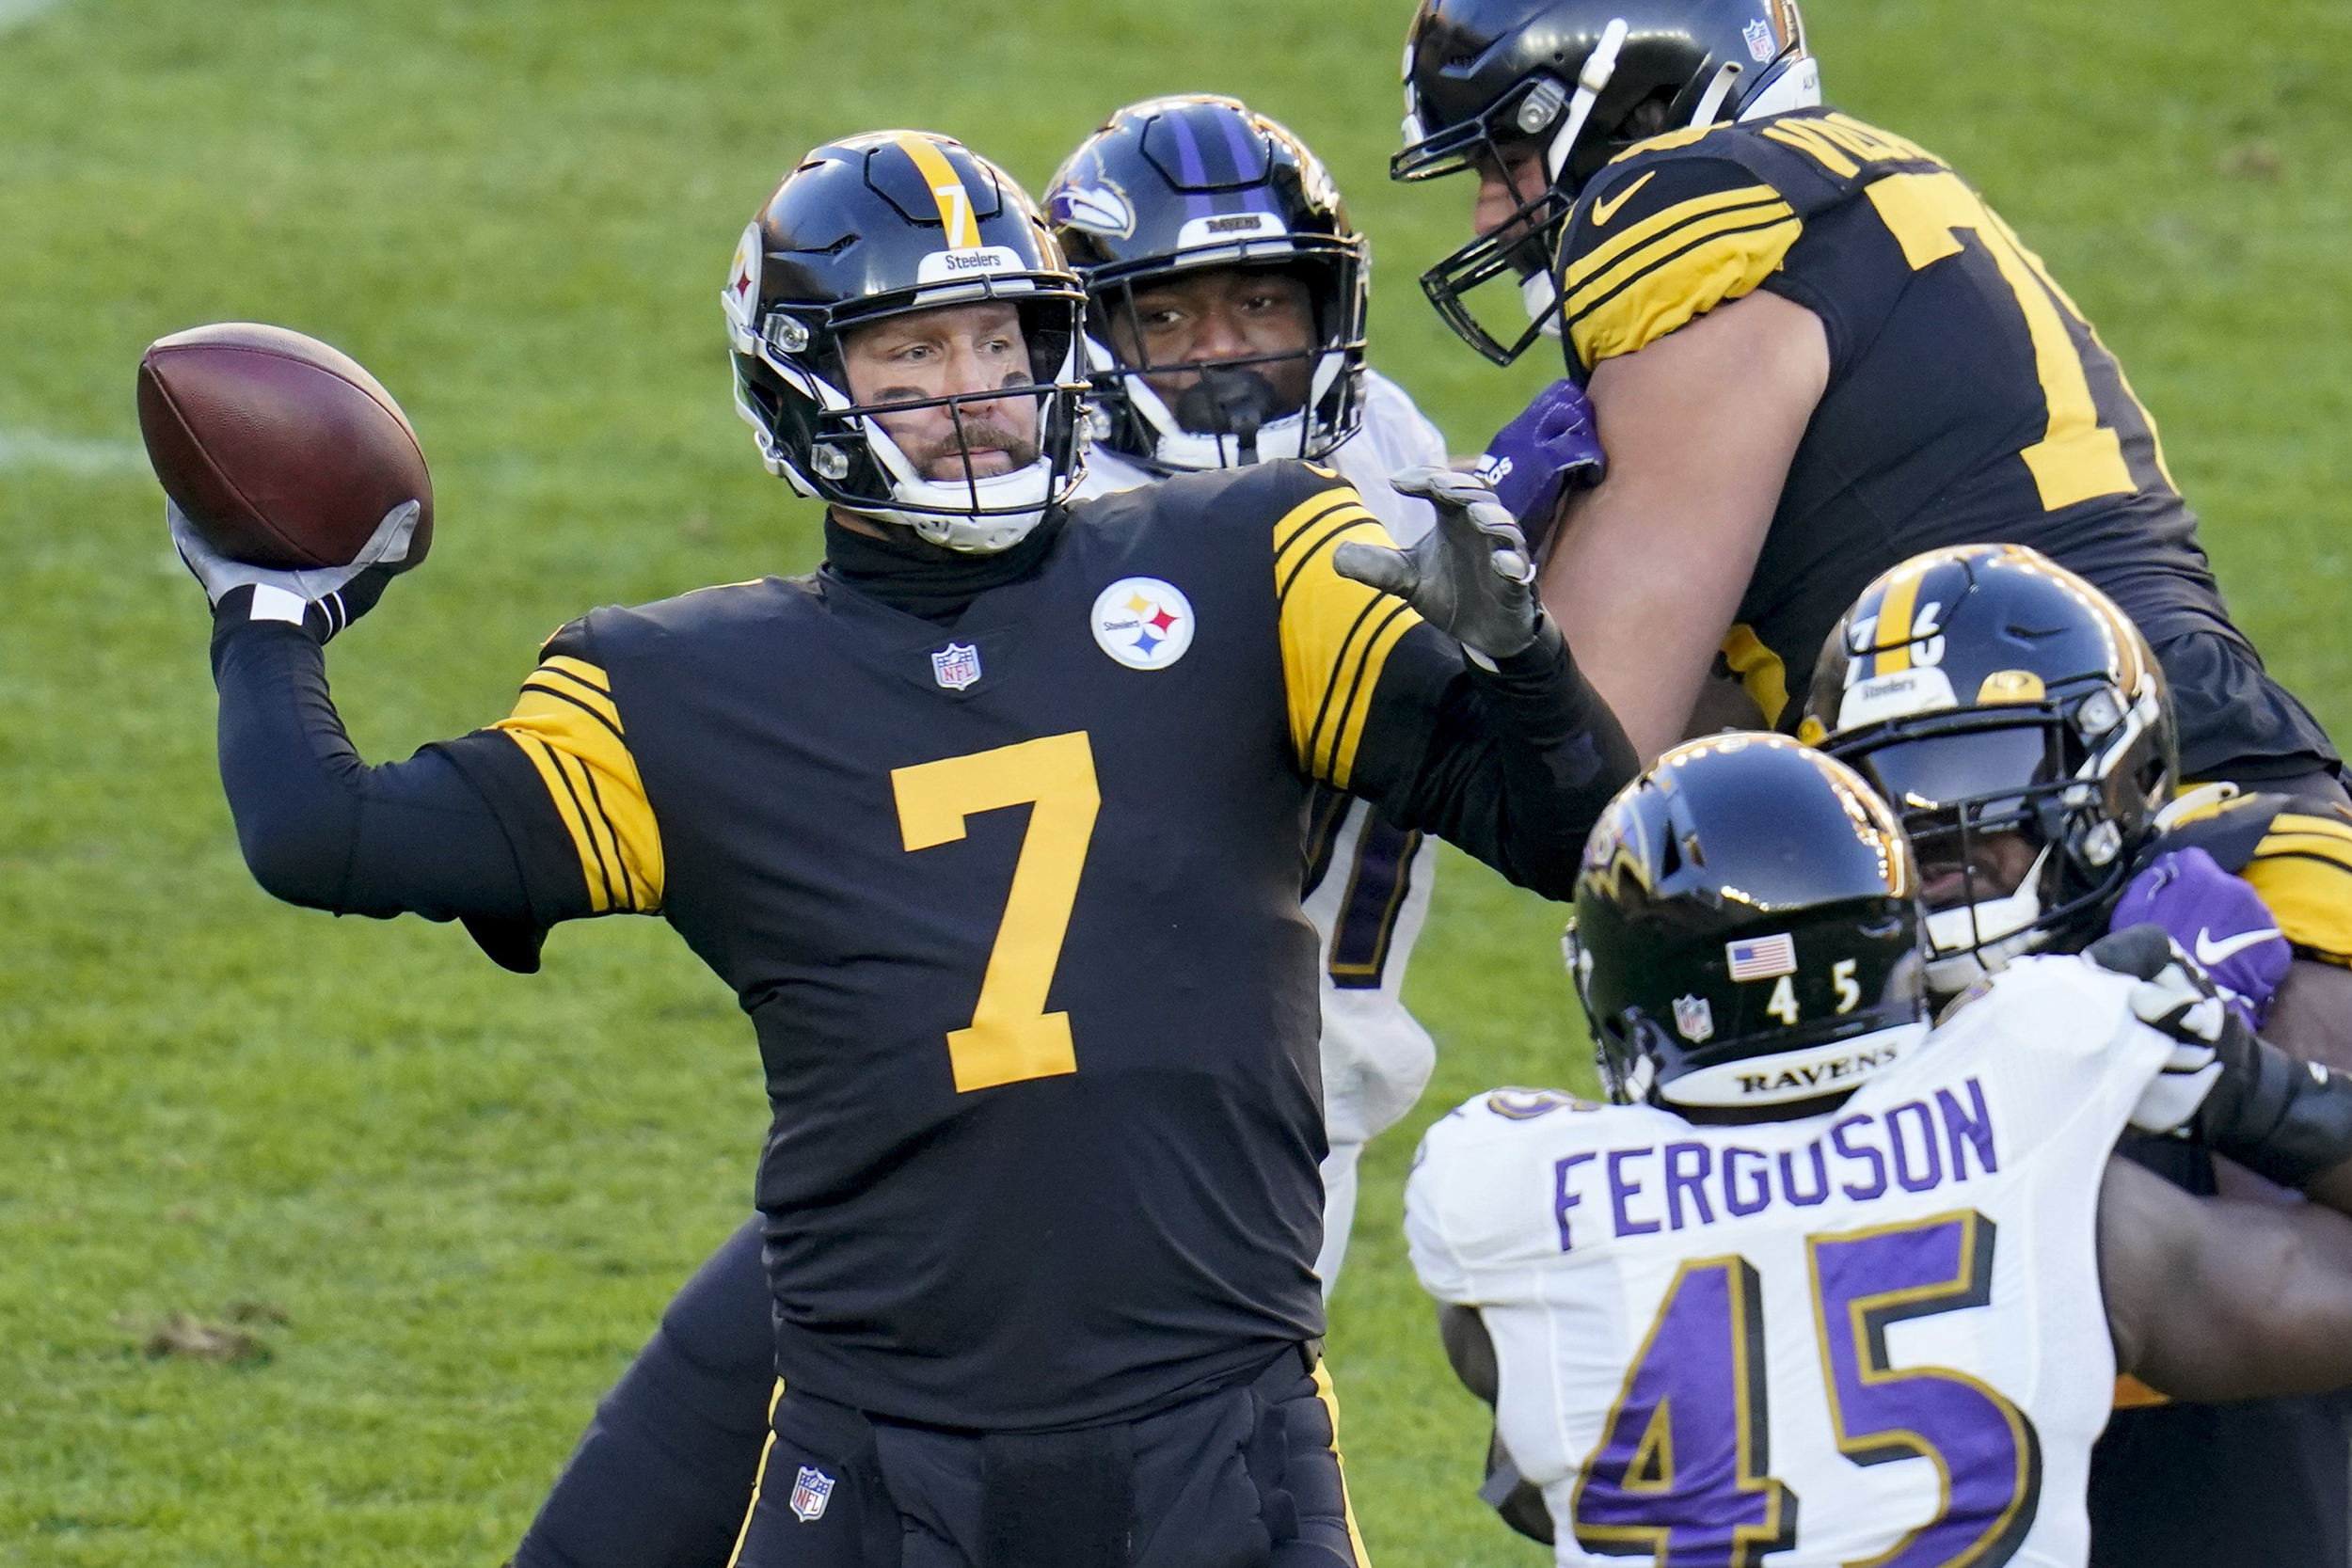 Nfl S Steelers Ravens Game Highlights Need For A Covid Playoff Bubble